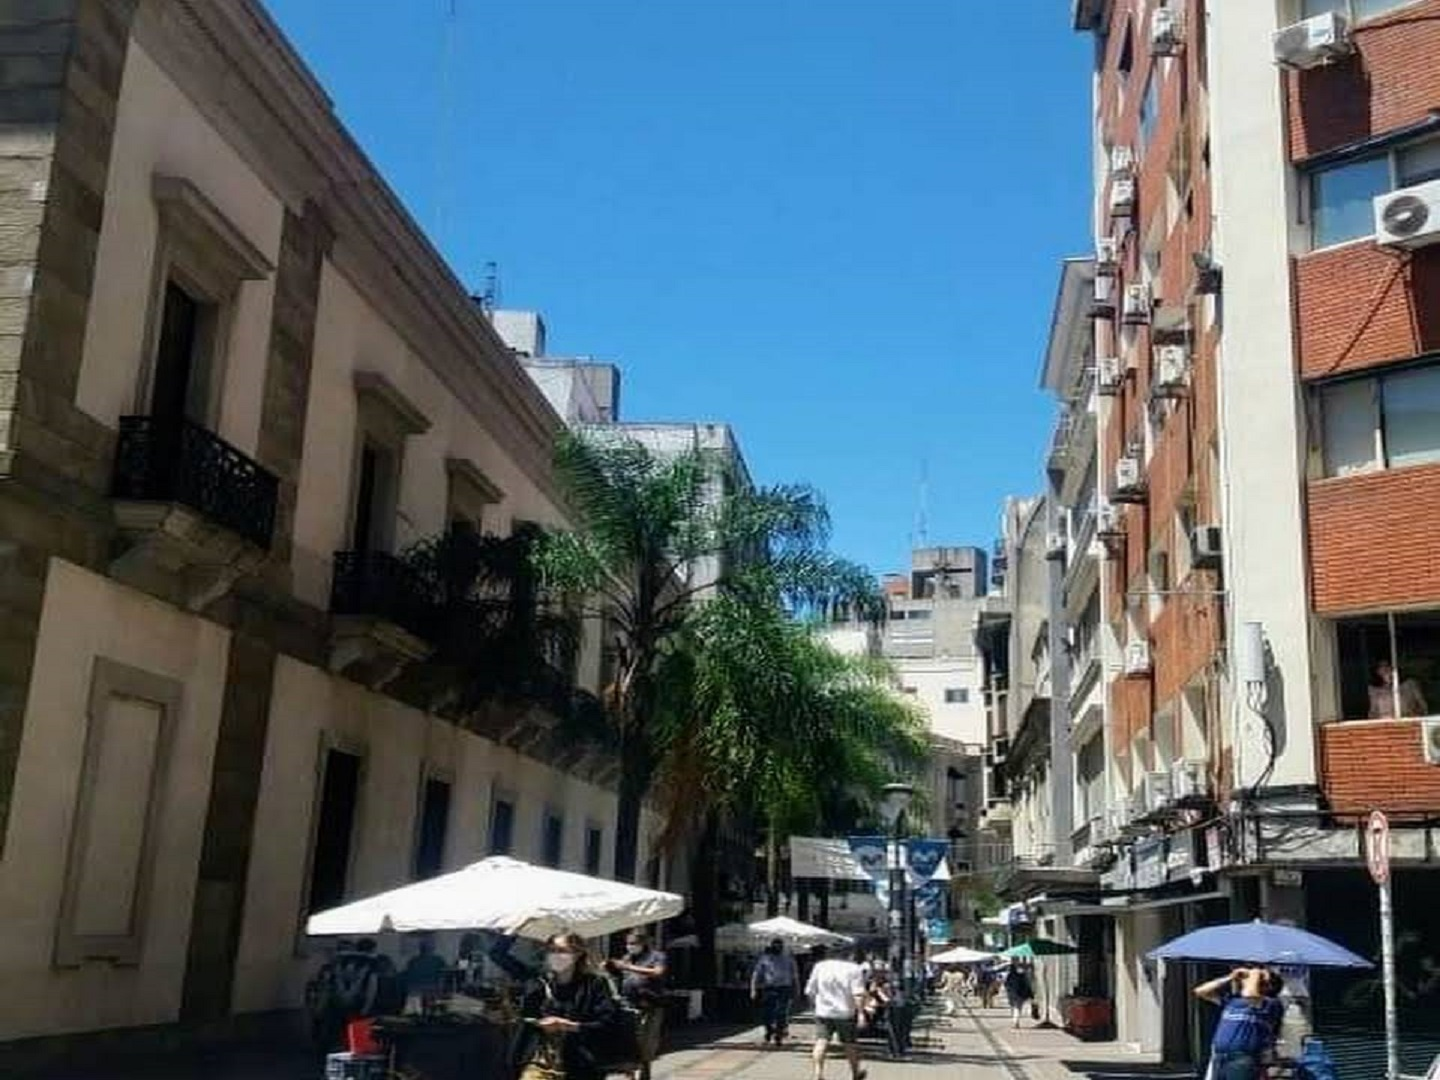 A narrow city street with buildings on the side of a building at Montevideo Port Hostel.